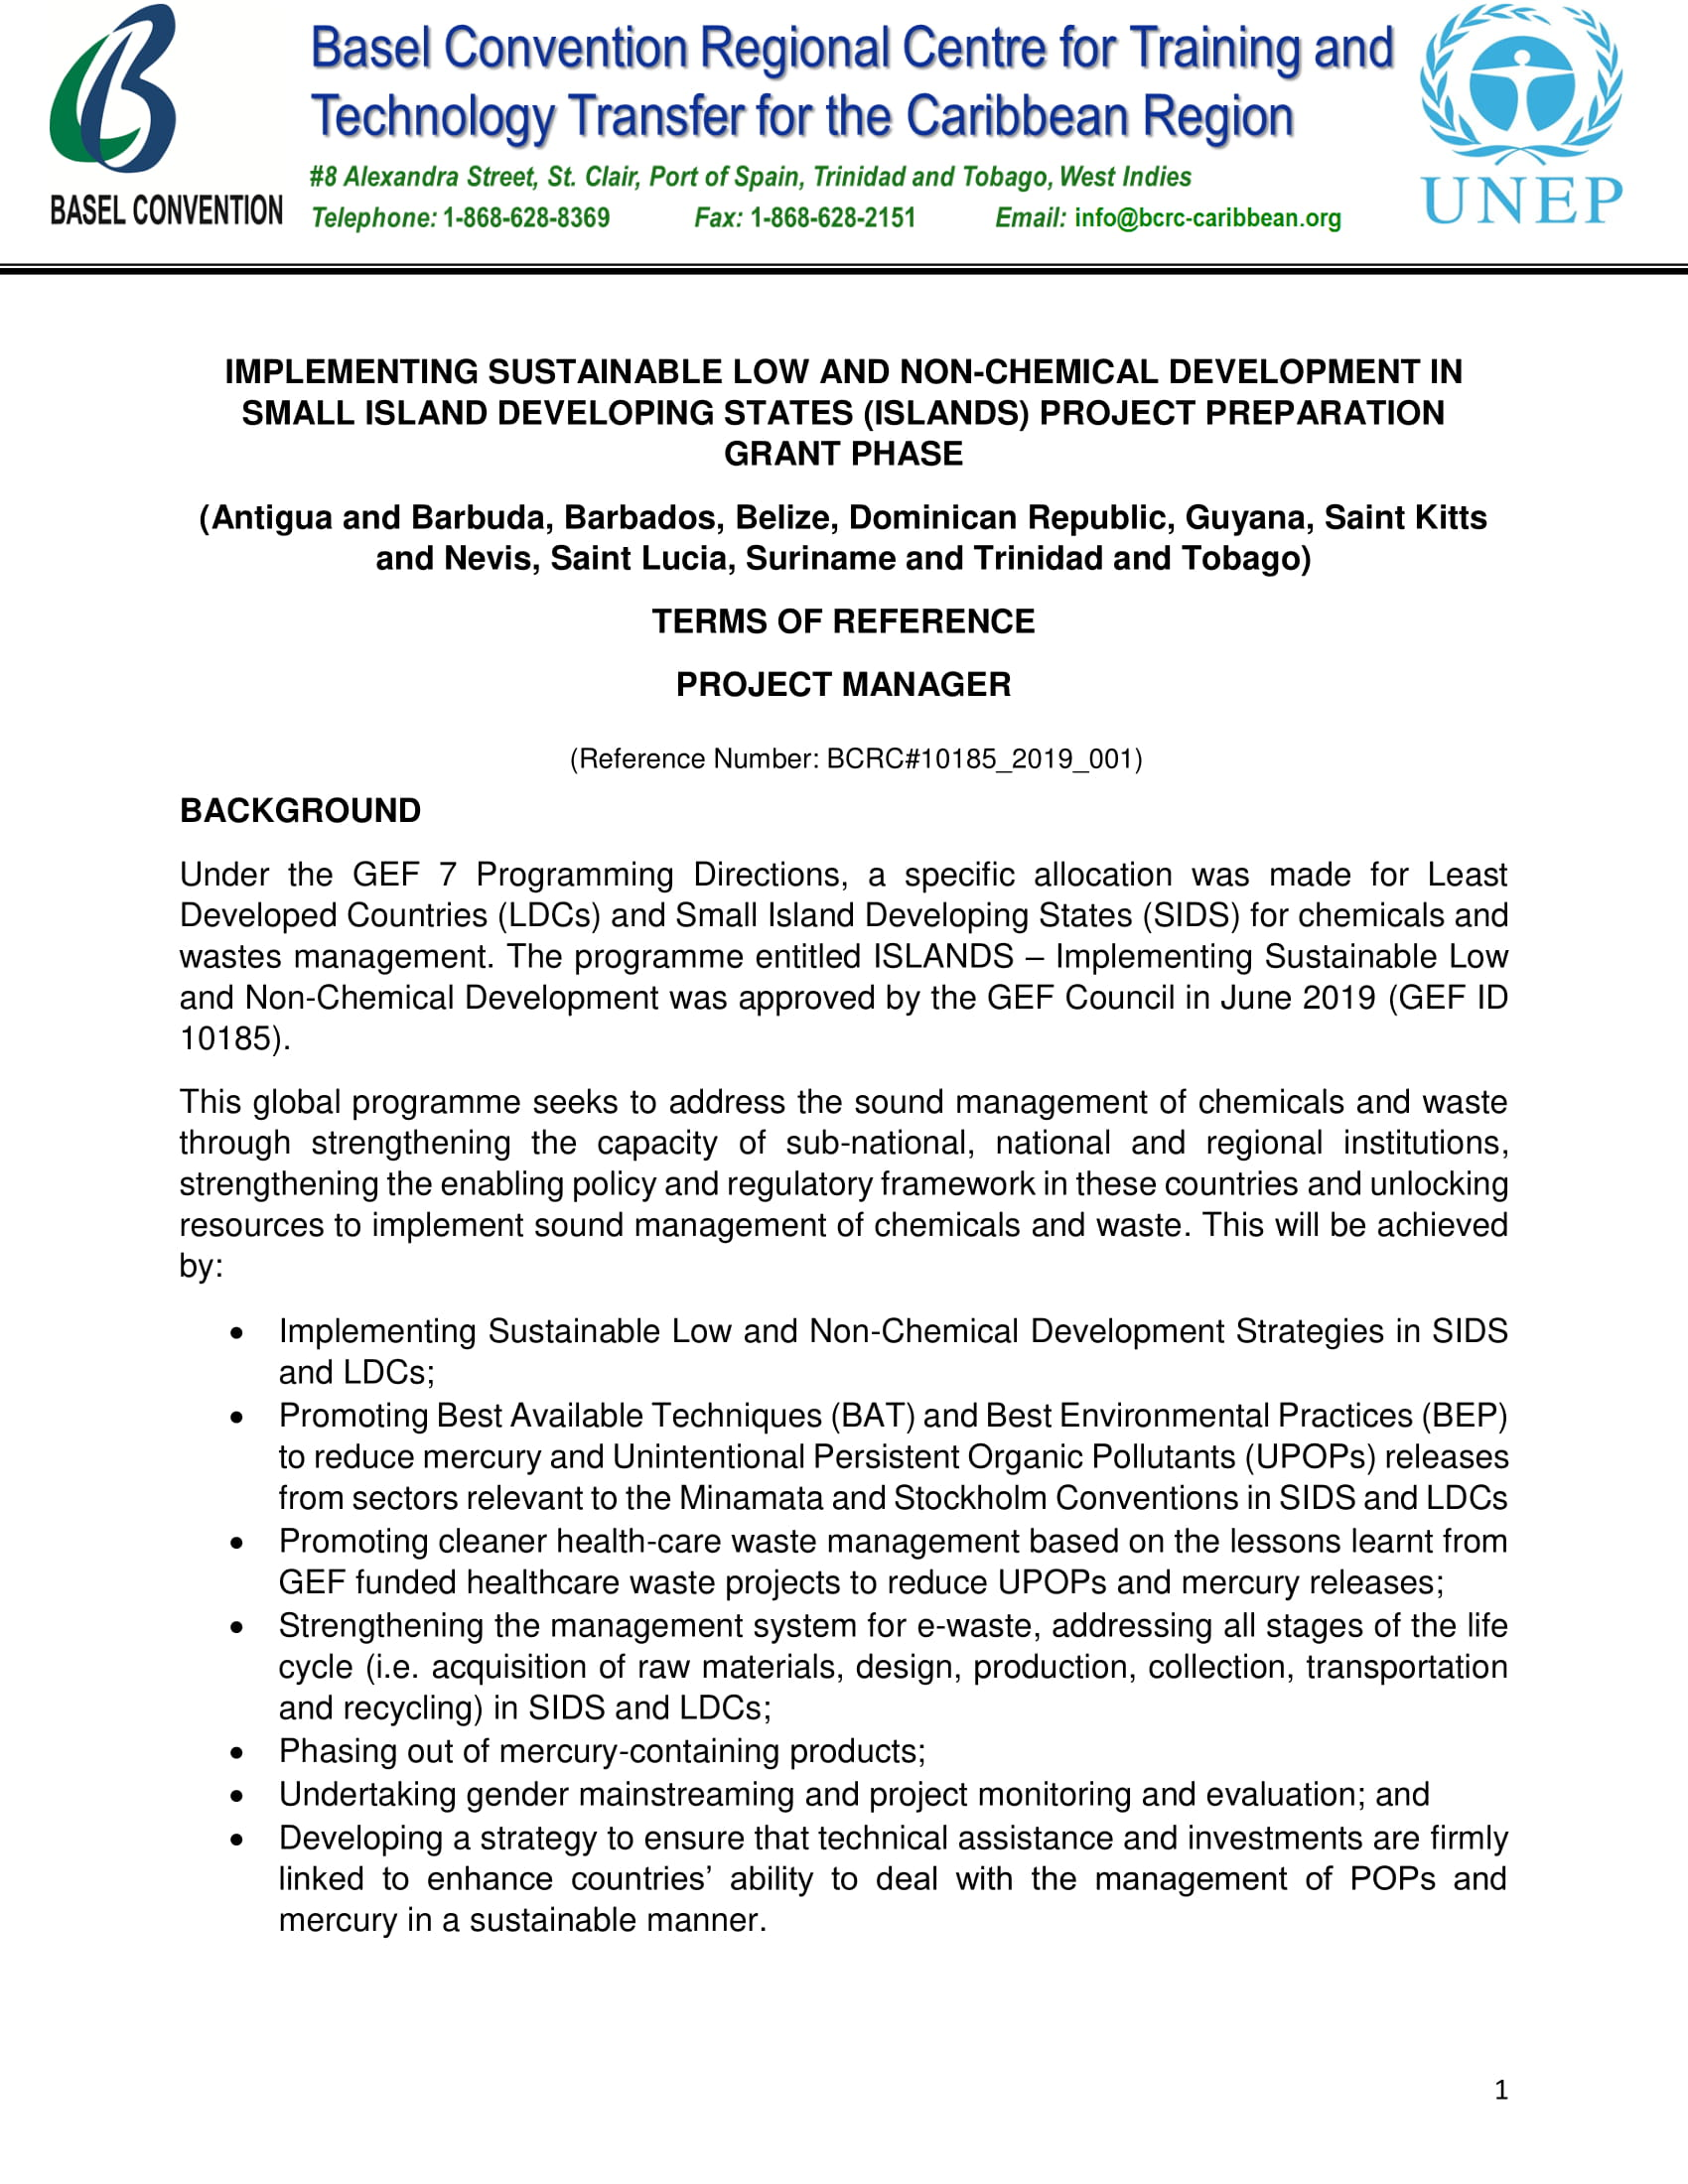 Basel Convention: Project Manager - OECS